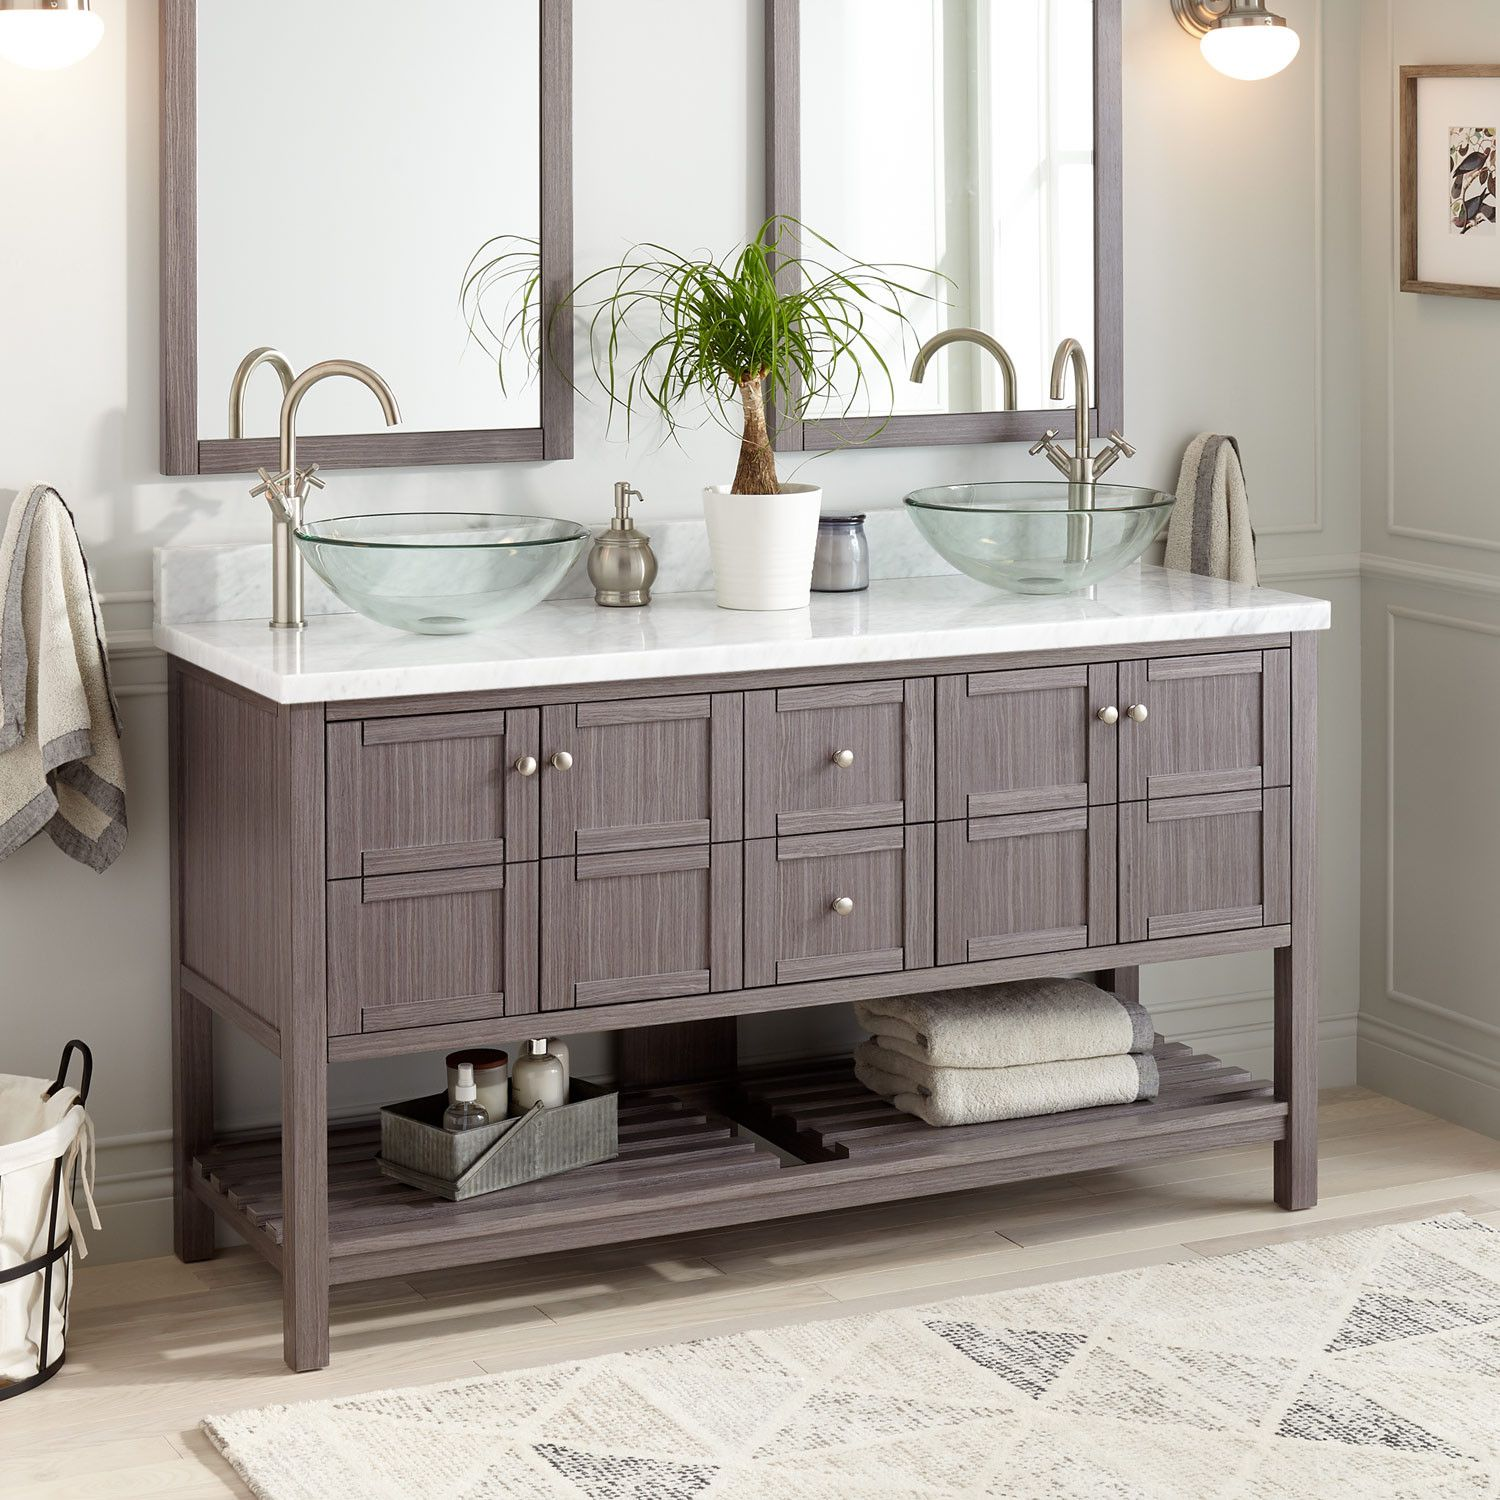 60 Everett Double Vessel Sink Double Console Vanity Ash Gray